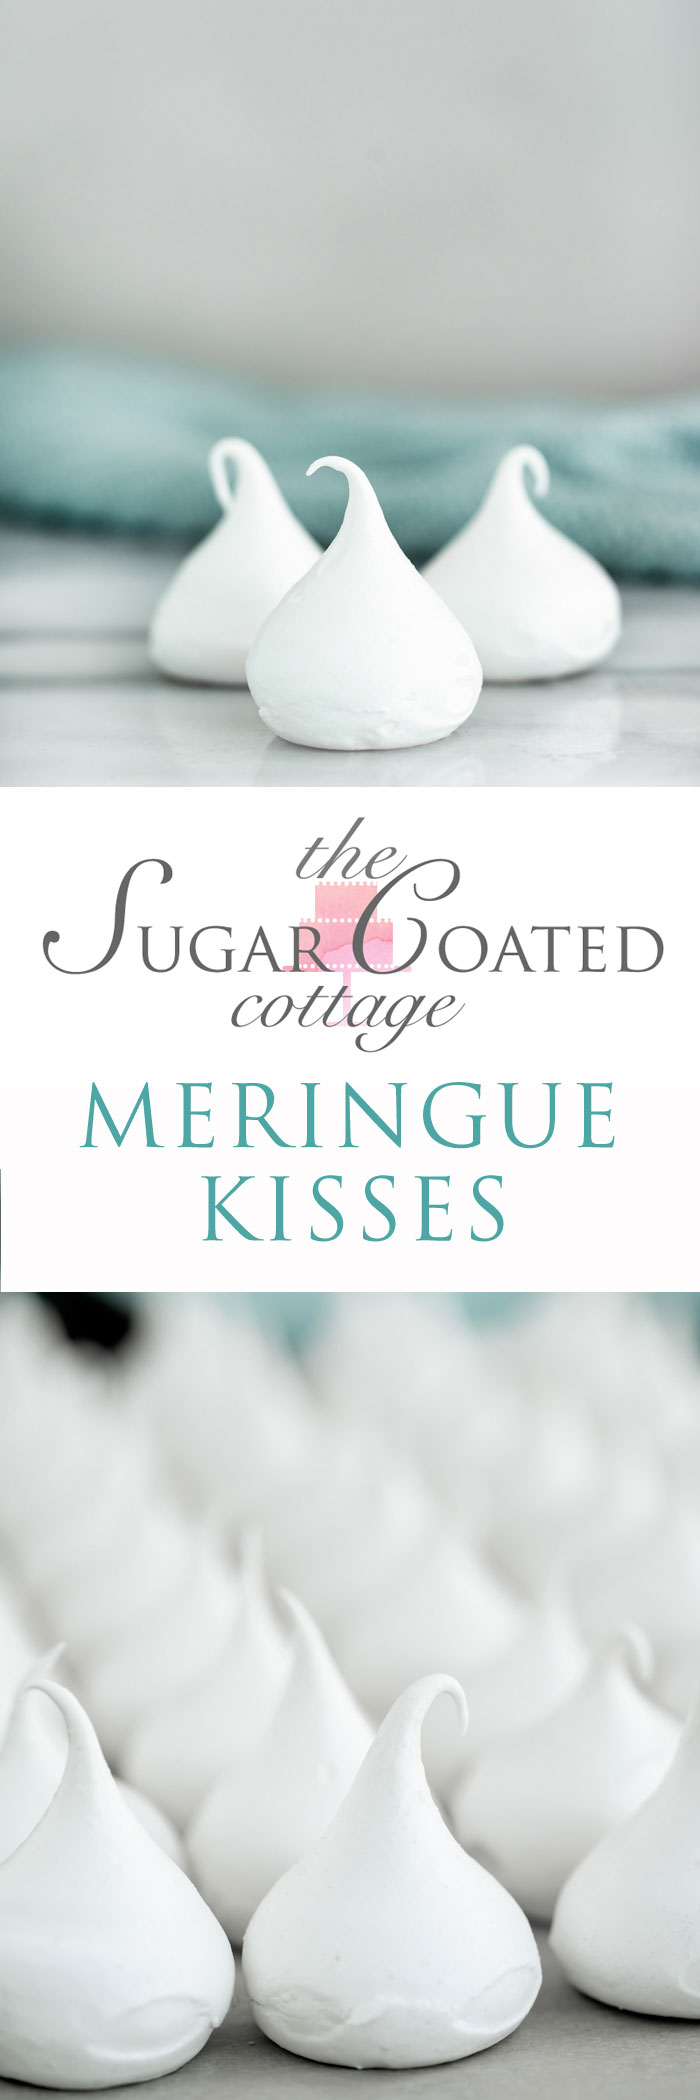 Meringue Kisses Recipe. The perfect dollop of meringue baked into a crispy on the outside, chewy on the inside cookie. | thesugarcoatedcottage.com #merignue